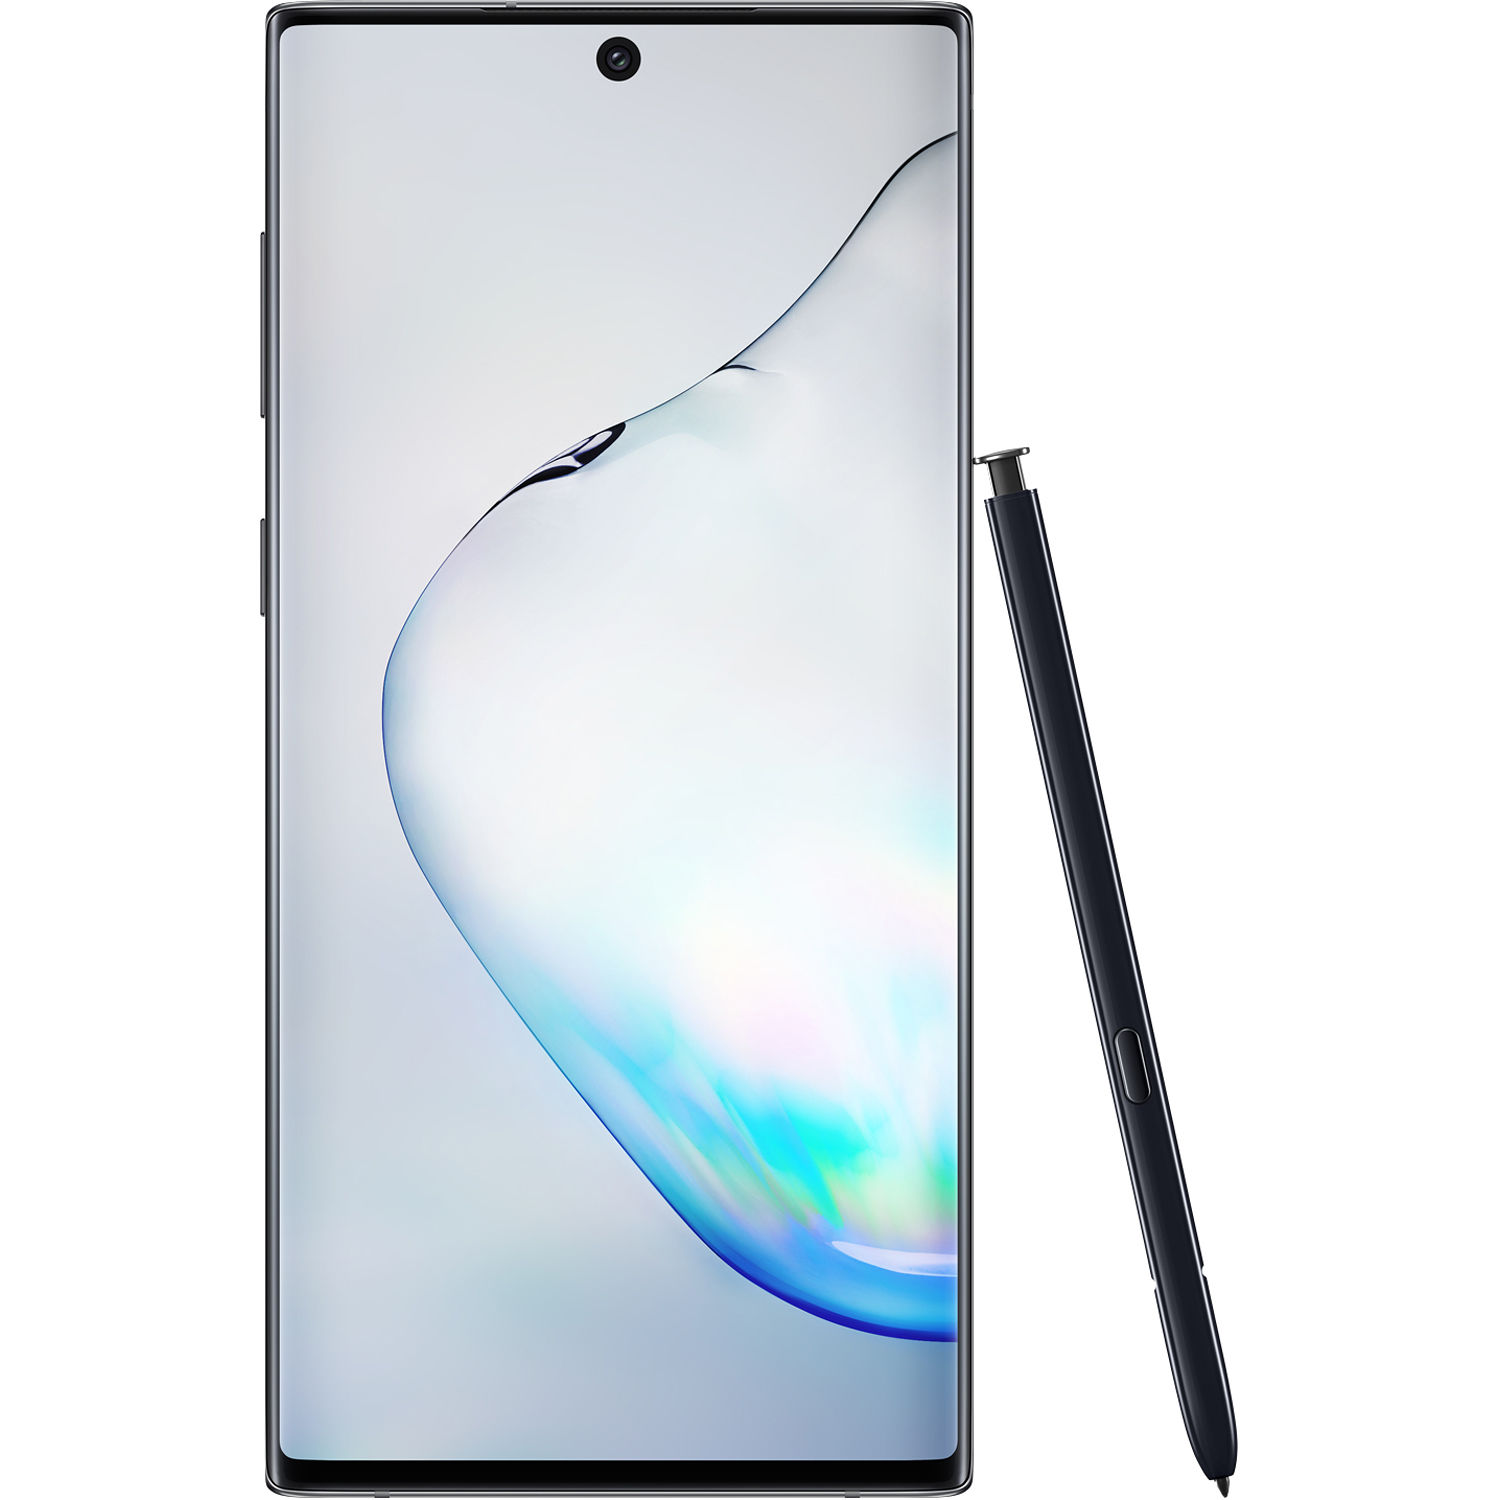 Image of Samsung Galaxy Note 10 N970FD 8GB/256GB Dual Sim with Tempered Glass Screen Protector and Folding Case (Black) - Aura Black